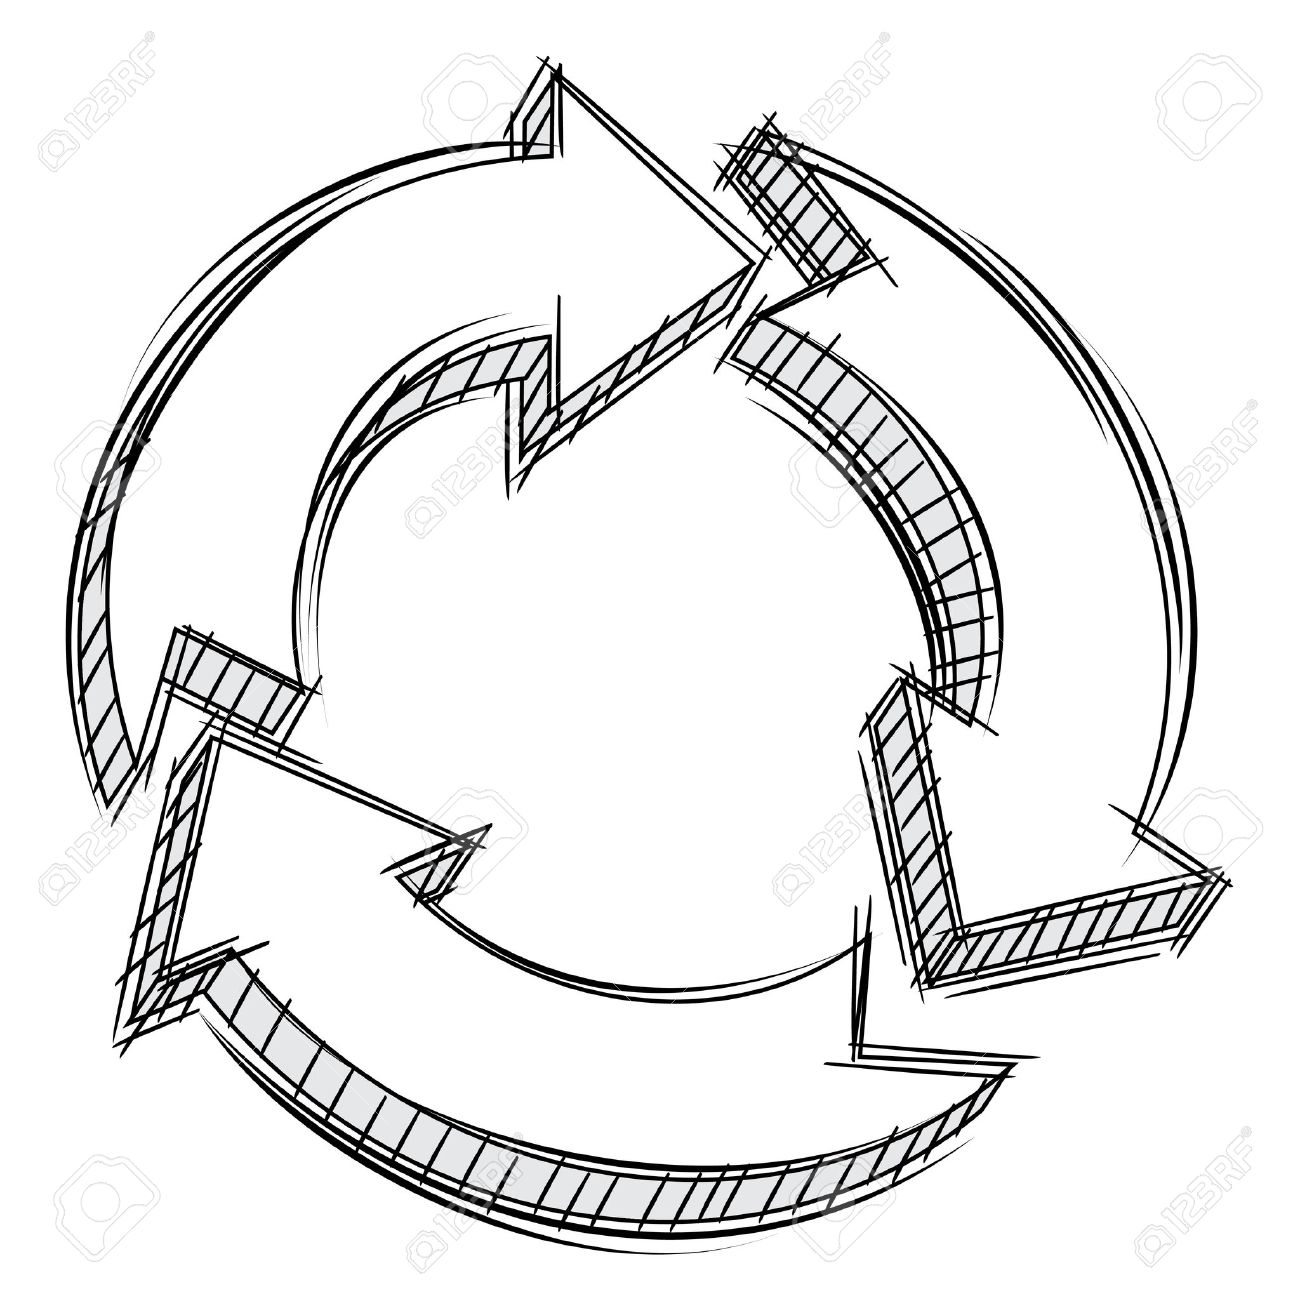 Process cycling arrow by arrow royalty free stock images image - Process Icon Doodle Of Three Circular Arrows